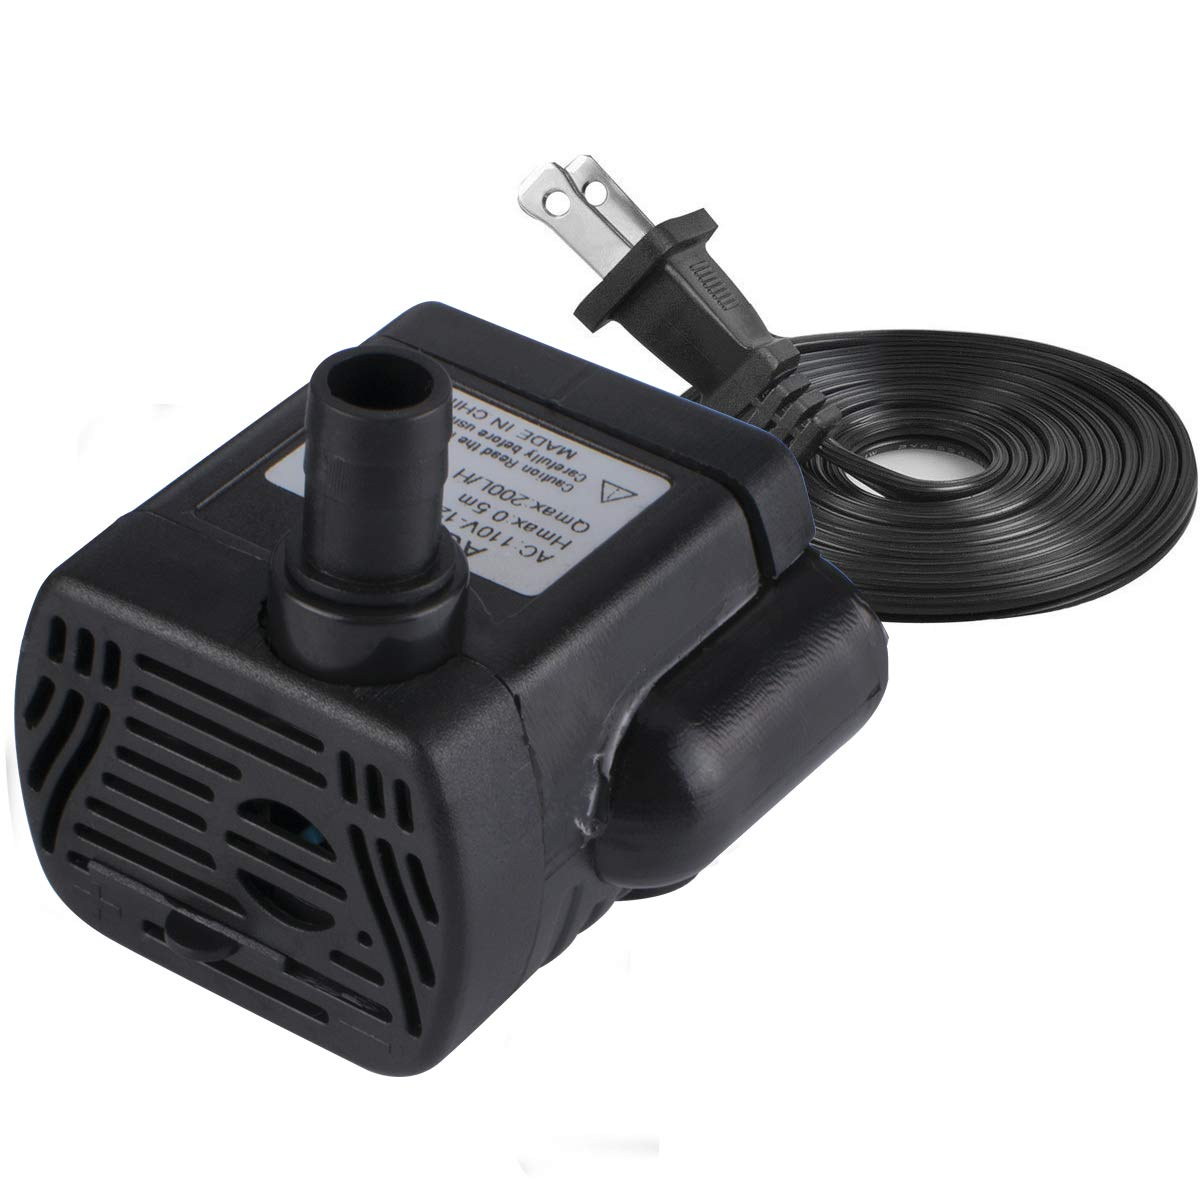 Xelparuc 200L/H 4W Submersible Water Pump, Ultra Quiet for Pond, 1.6ft High Lift, Aquarium, Fish Tank Fountain, Powerful Water Pump with 4.9ft (1.5m) Power Cord